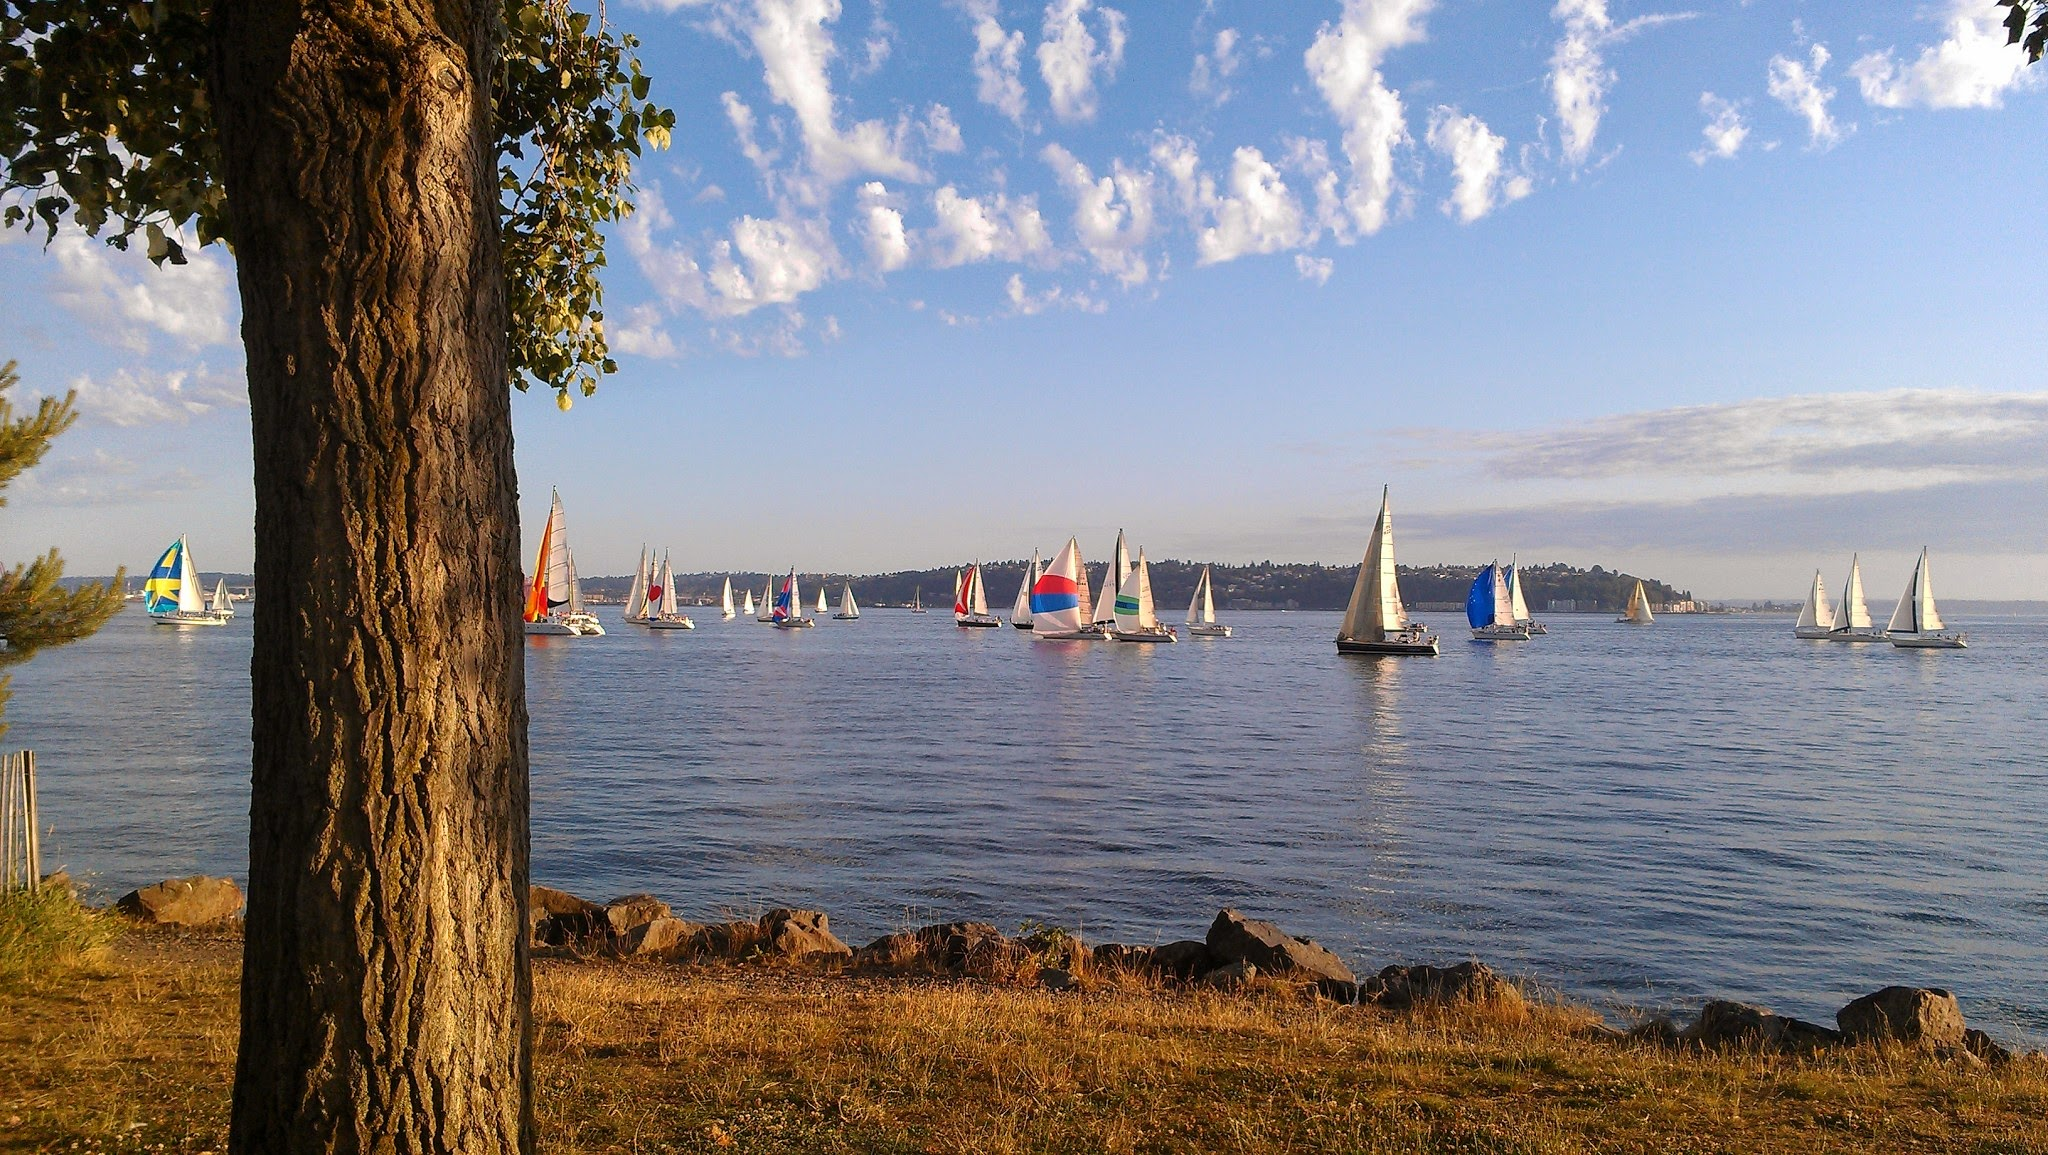 Many colorful sailboats in the water under partly cloudy skies. In the foreground is grass and a tree on shore